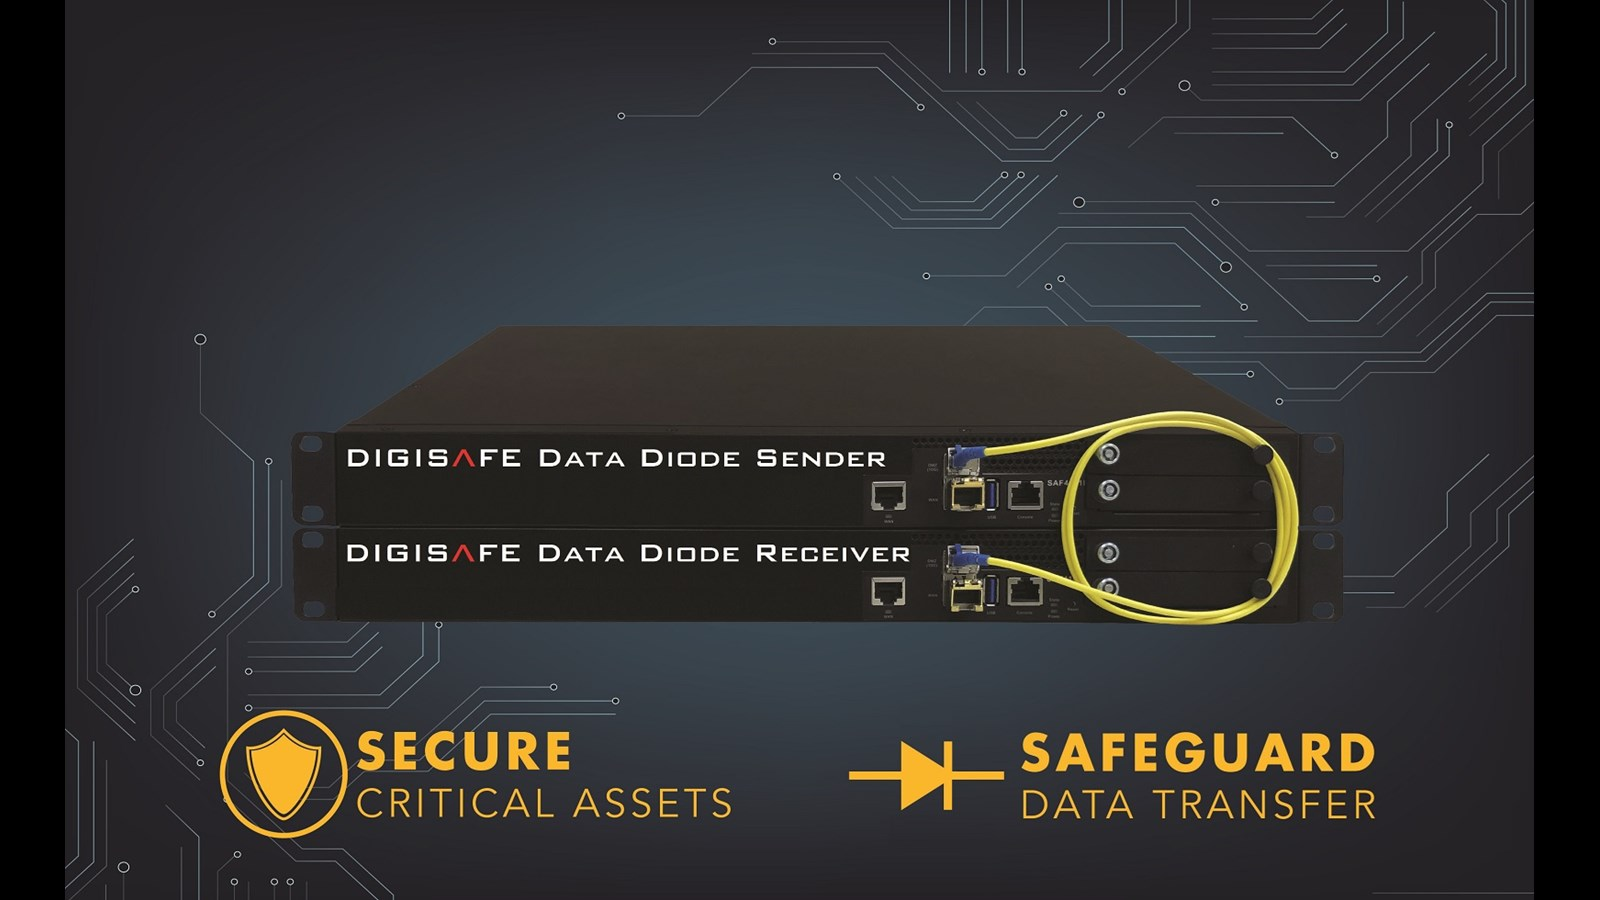 DigiSAFE Data Diode Solution